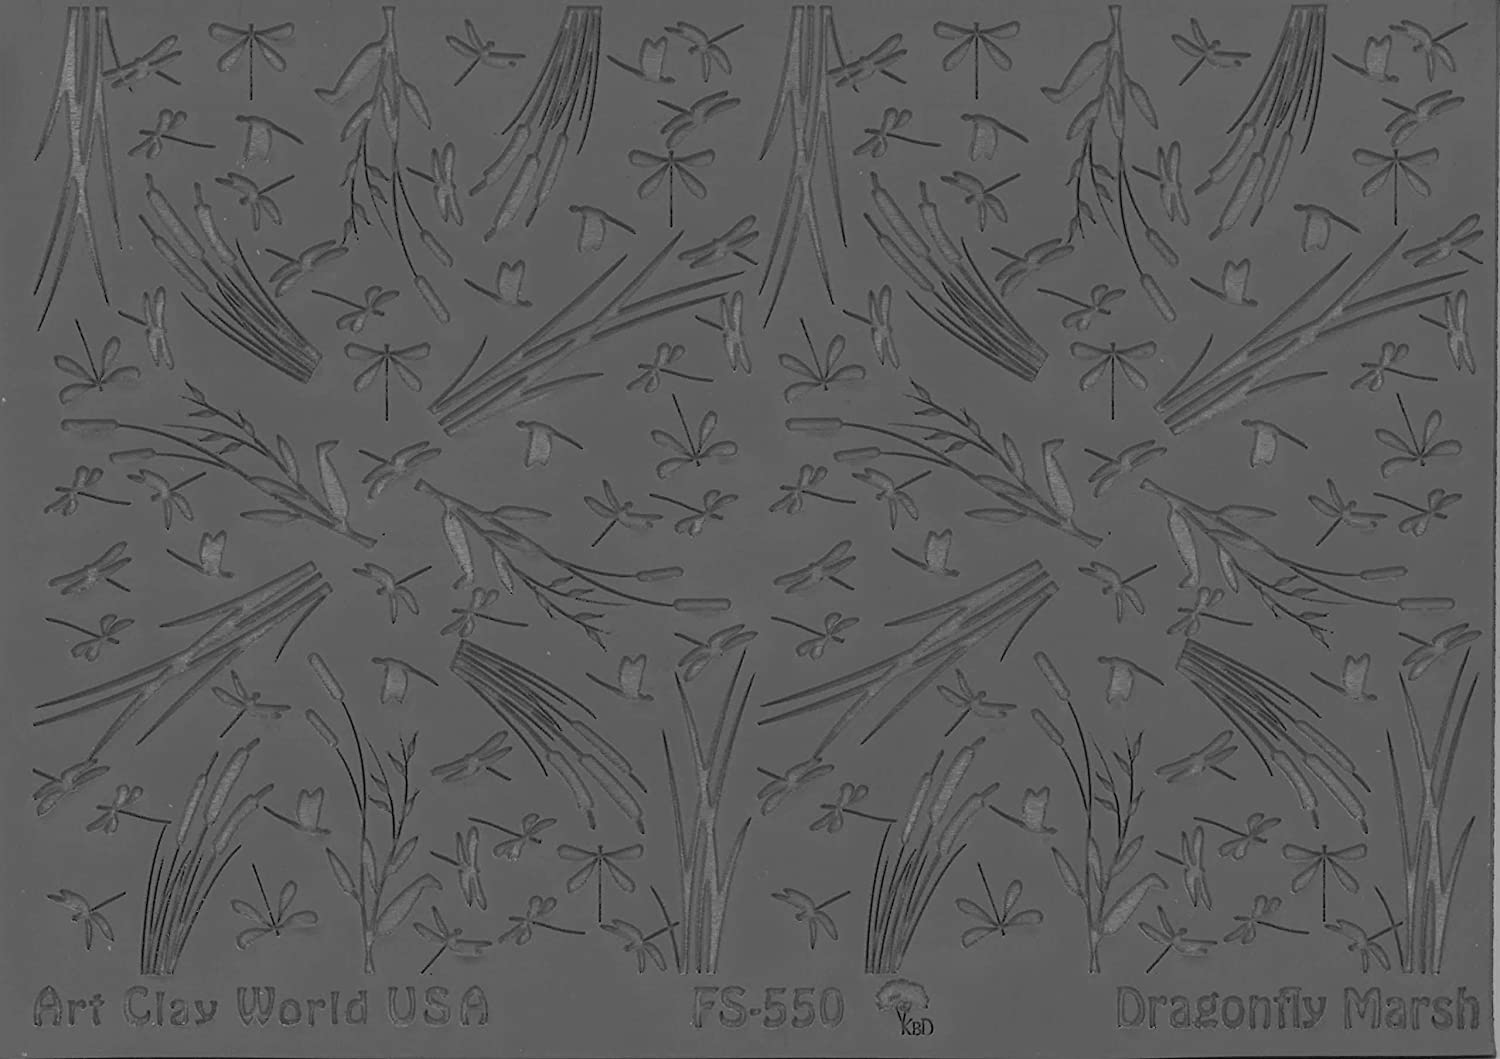 FLEXISTAMPS TEXTURE SHEETS DRAGONFLY MARSH DESIGN - 1 PC